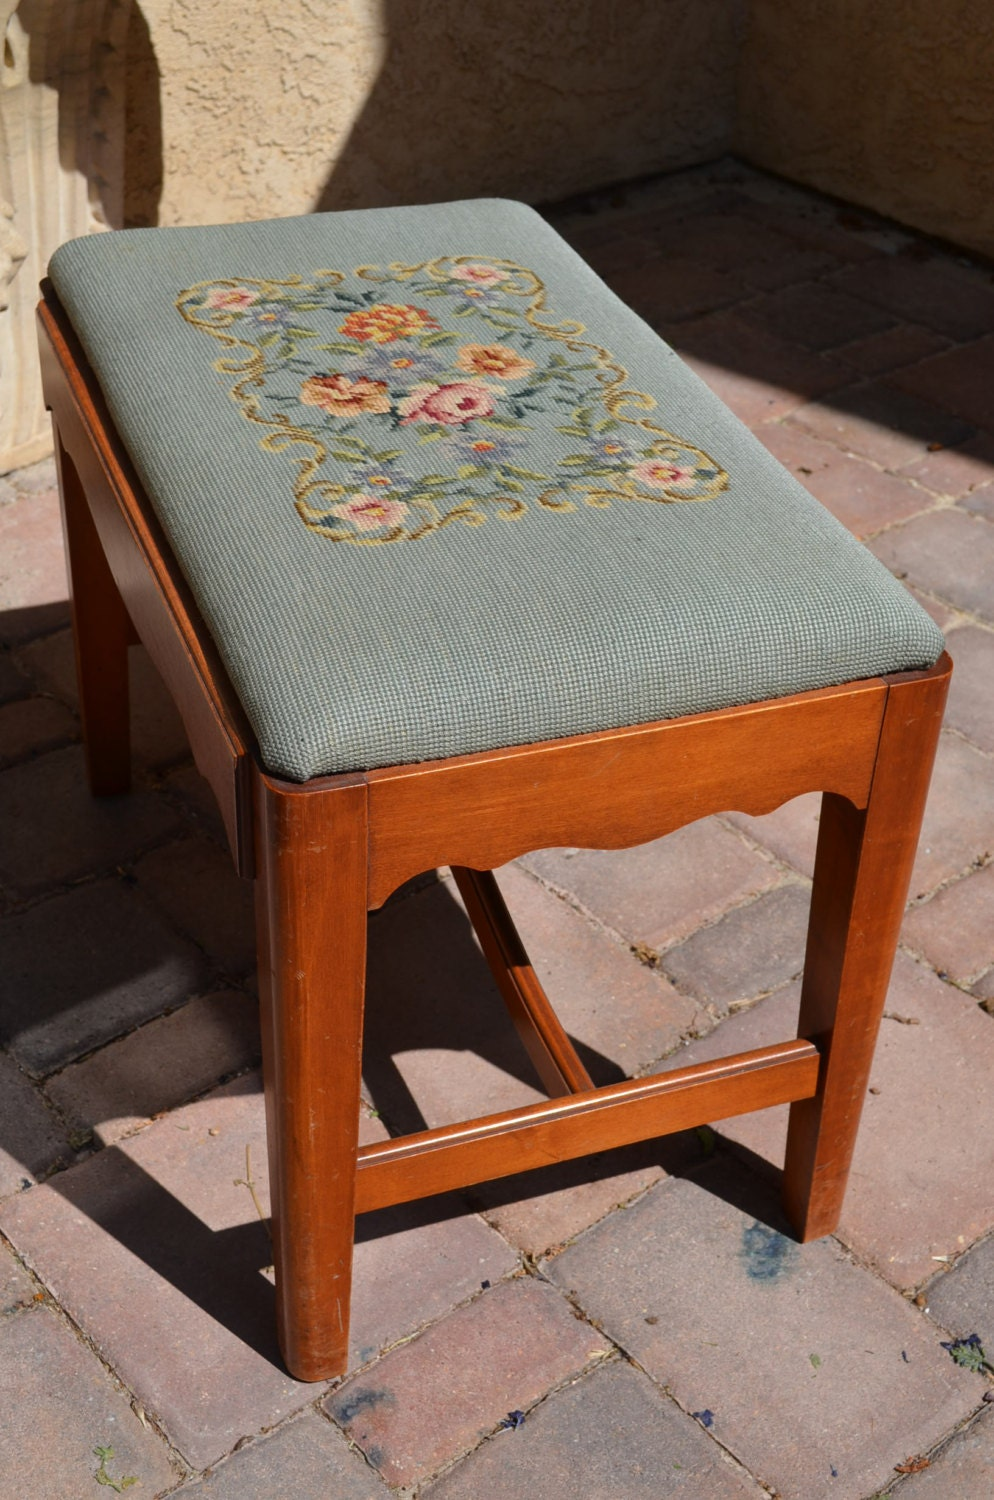 Antique Blue Floral Needlepoint Piano Bench With Maple Wood